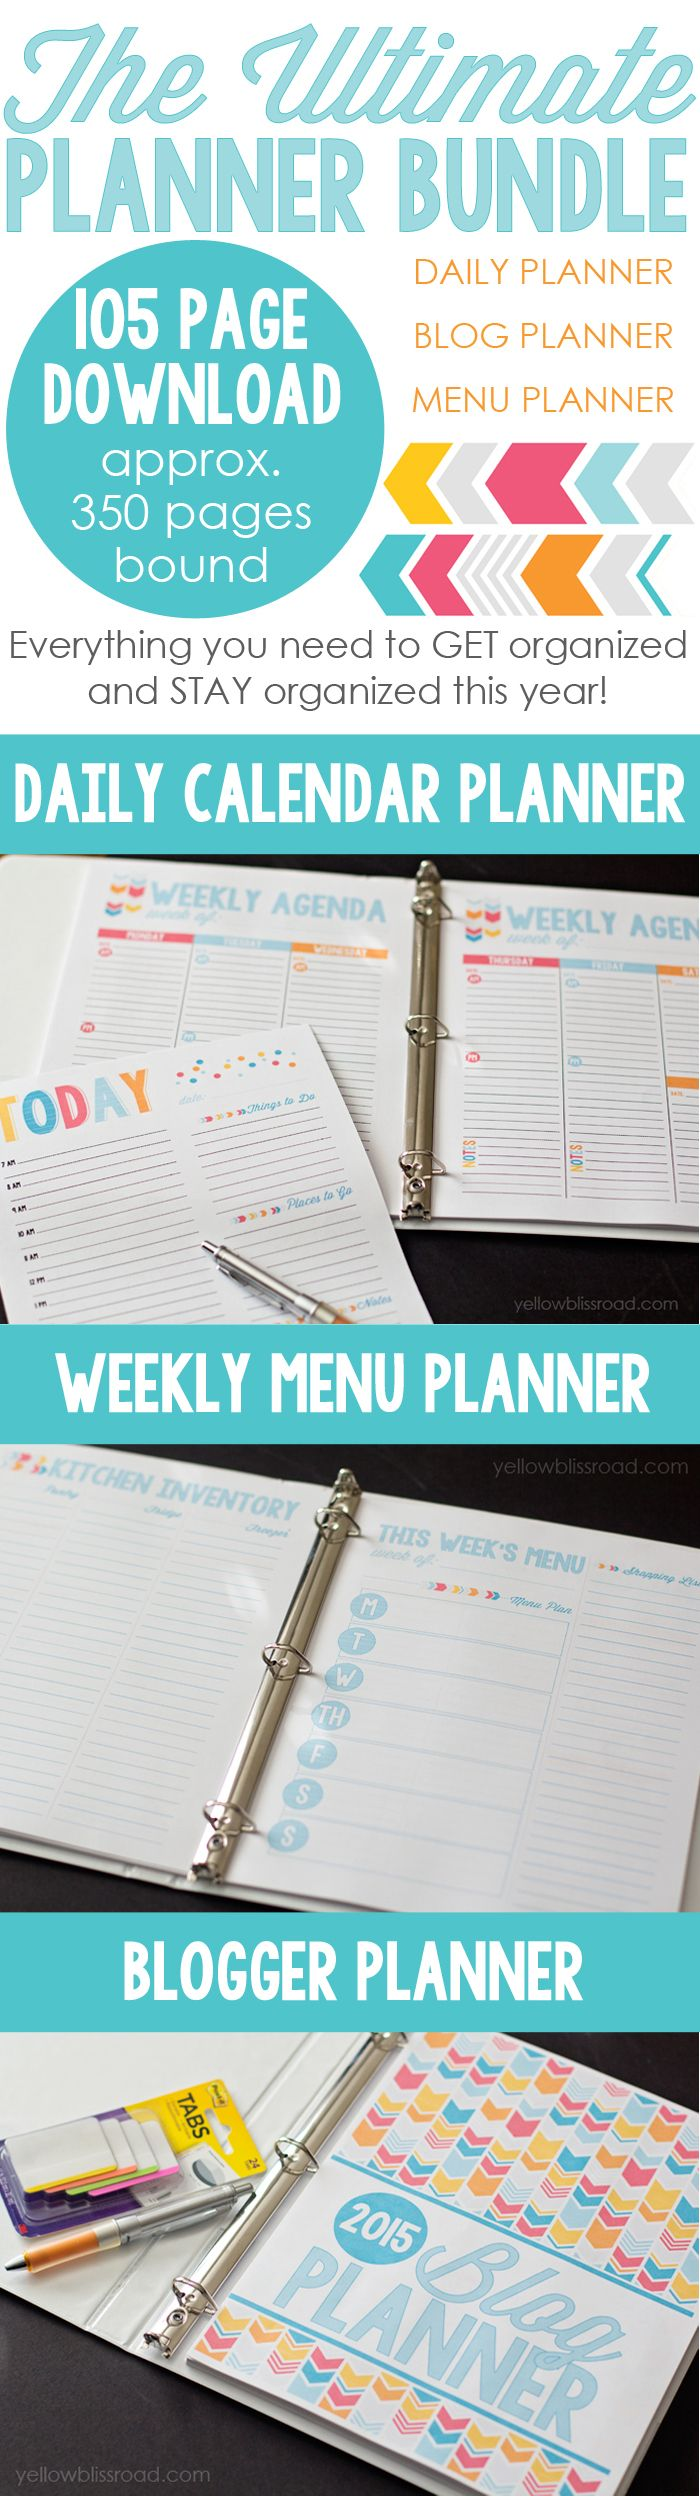 Awesome yearly planner, blog planner and menu planner.  Everything you need to stay organized!